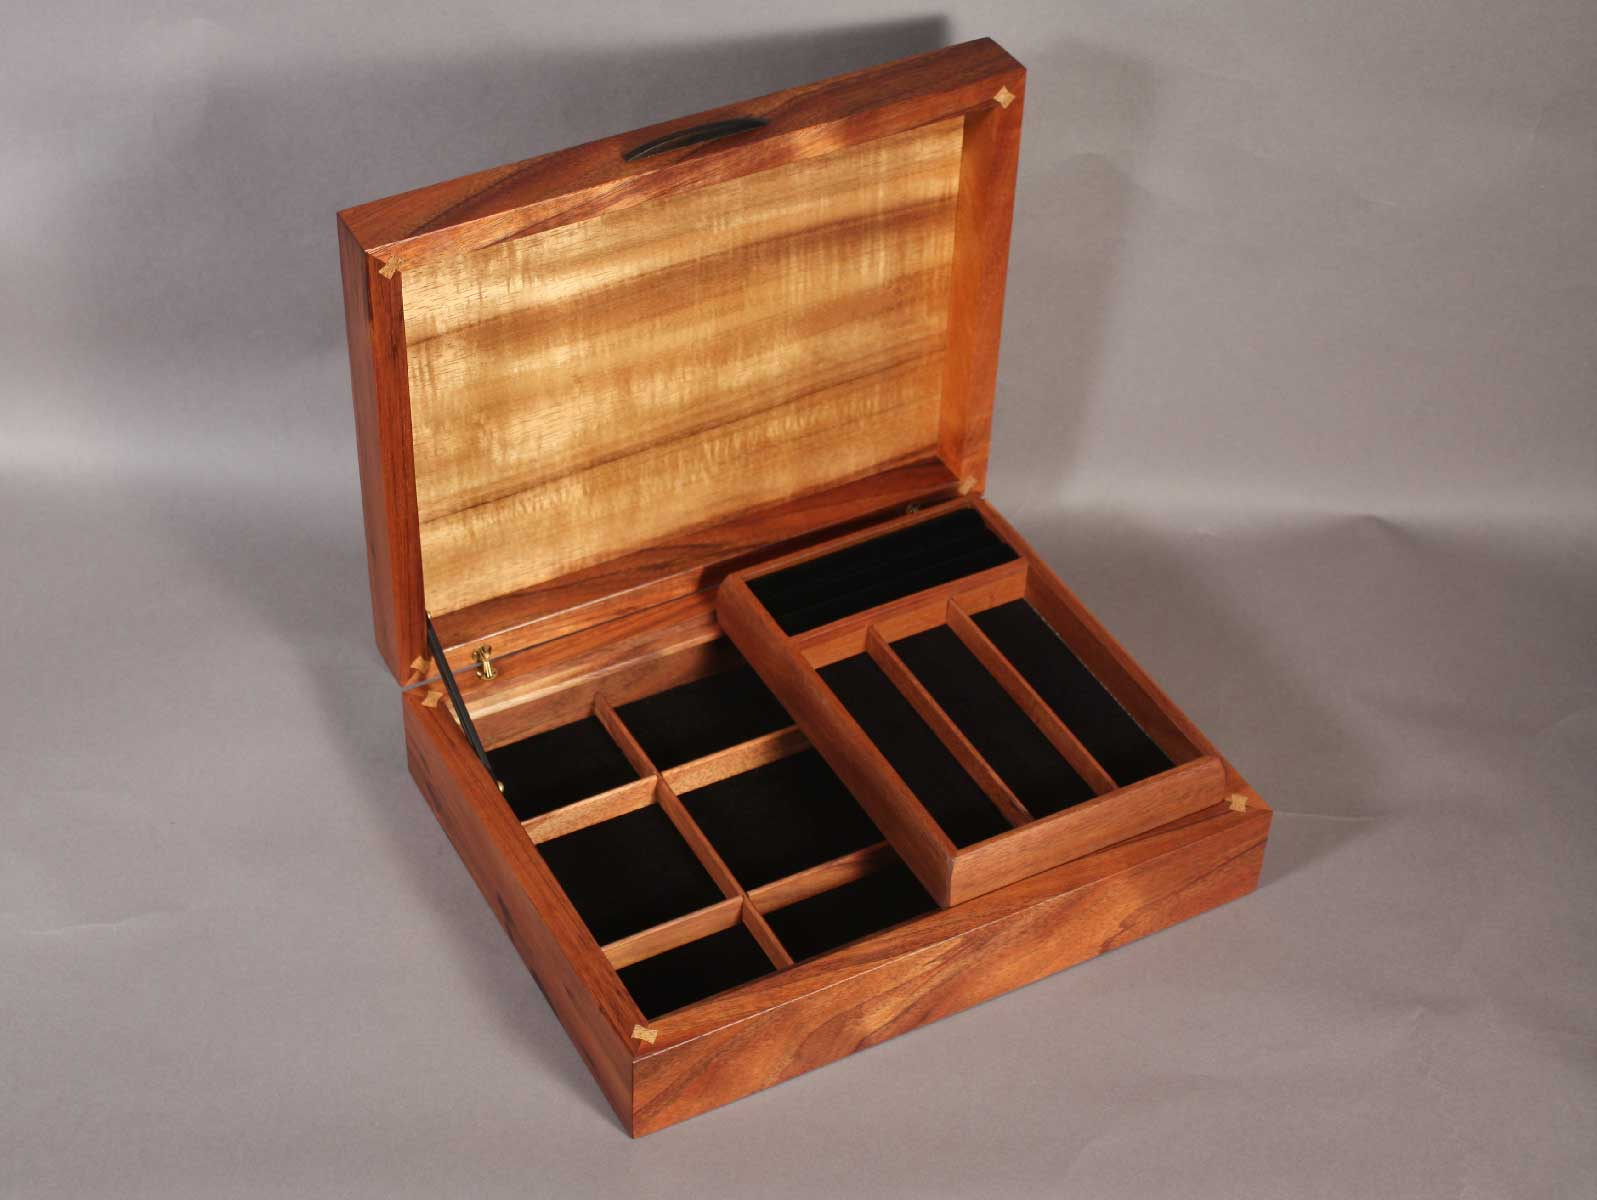 koa jewelry boxes with handcrafted inlay